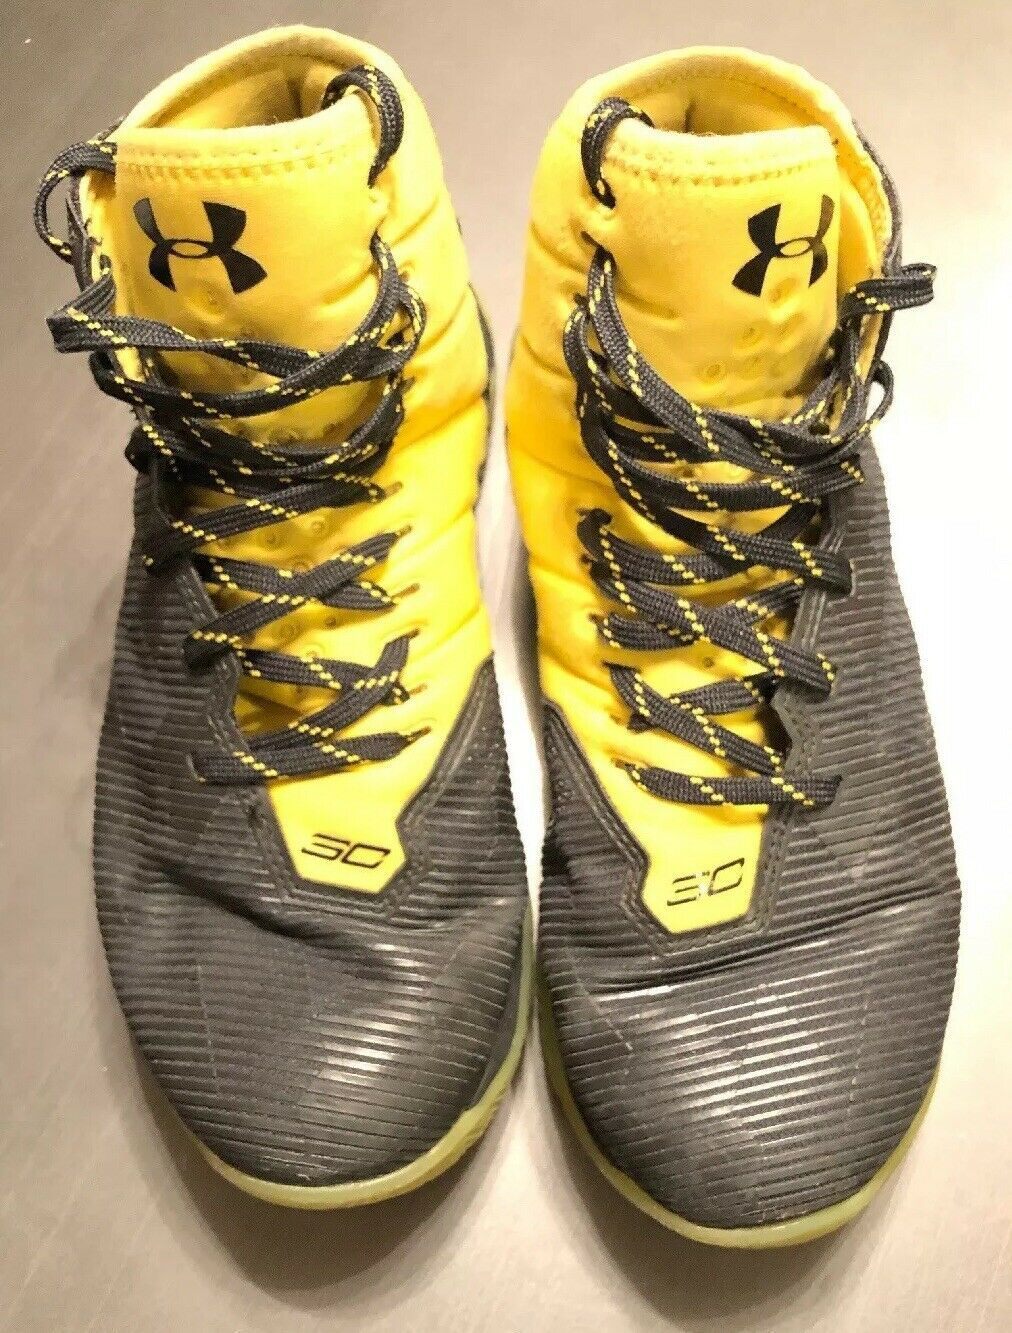 7a77cbb21d15 Under Armour Steph Stephen Curry 2.5 Black Yellow Warriors SZ 7 Basketball  Shoes - Curry 4 Shoes - Latest Curry 4 Shoes -  curry  curryshoes   curry30shoes ...